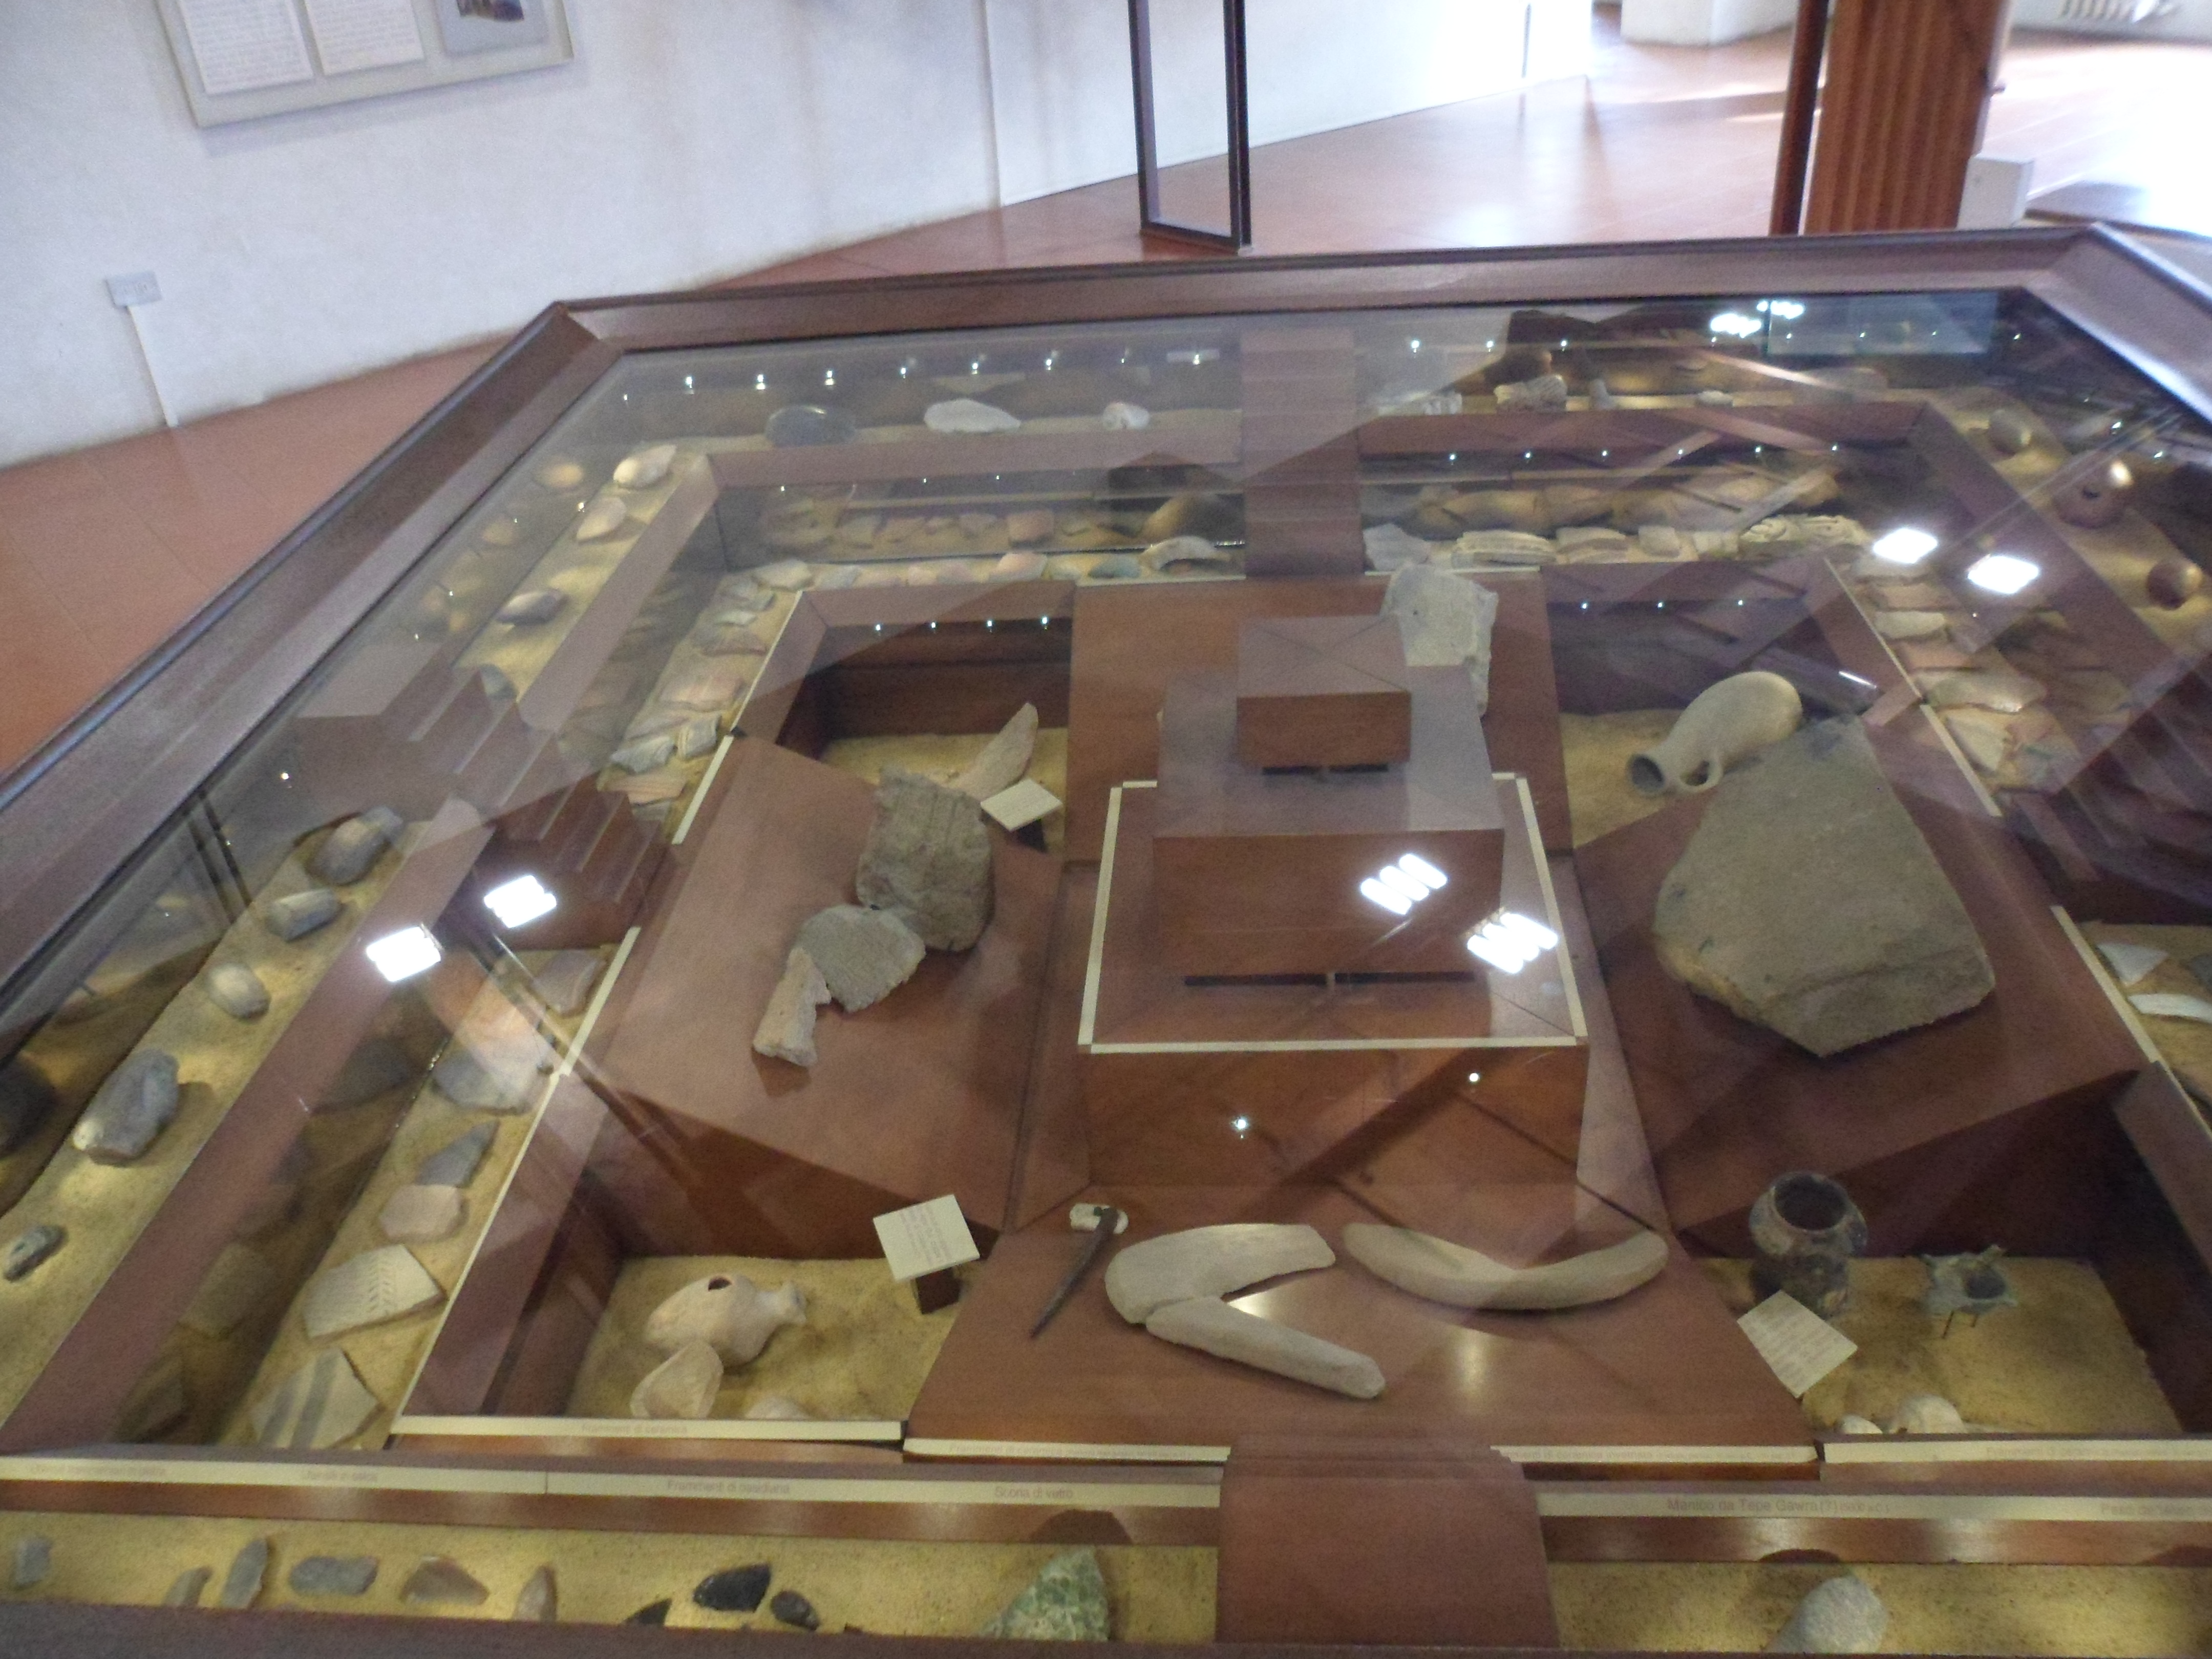 Assorted bricks, jars, seals, clay sickles, tablets, pot fragments, etc. in a depression covered in glass and shaped like a step pyramid